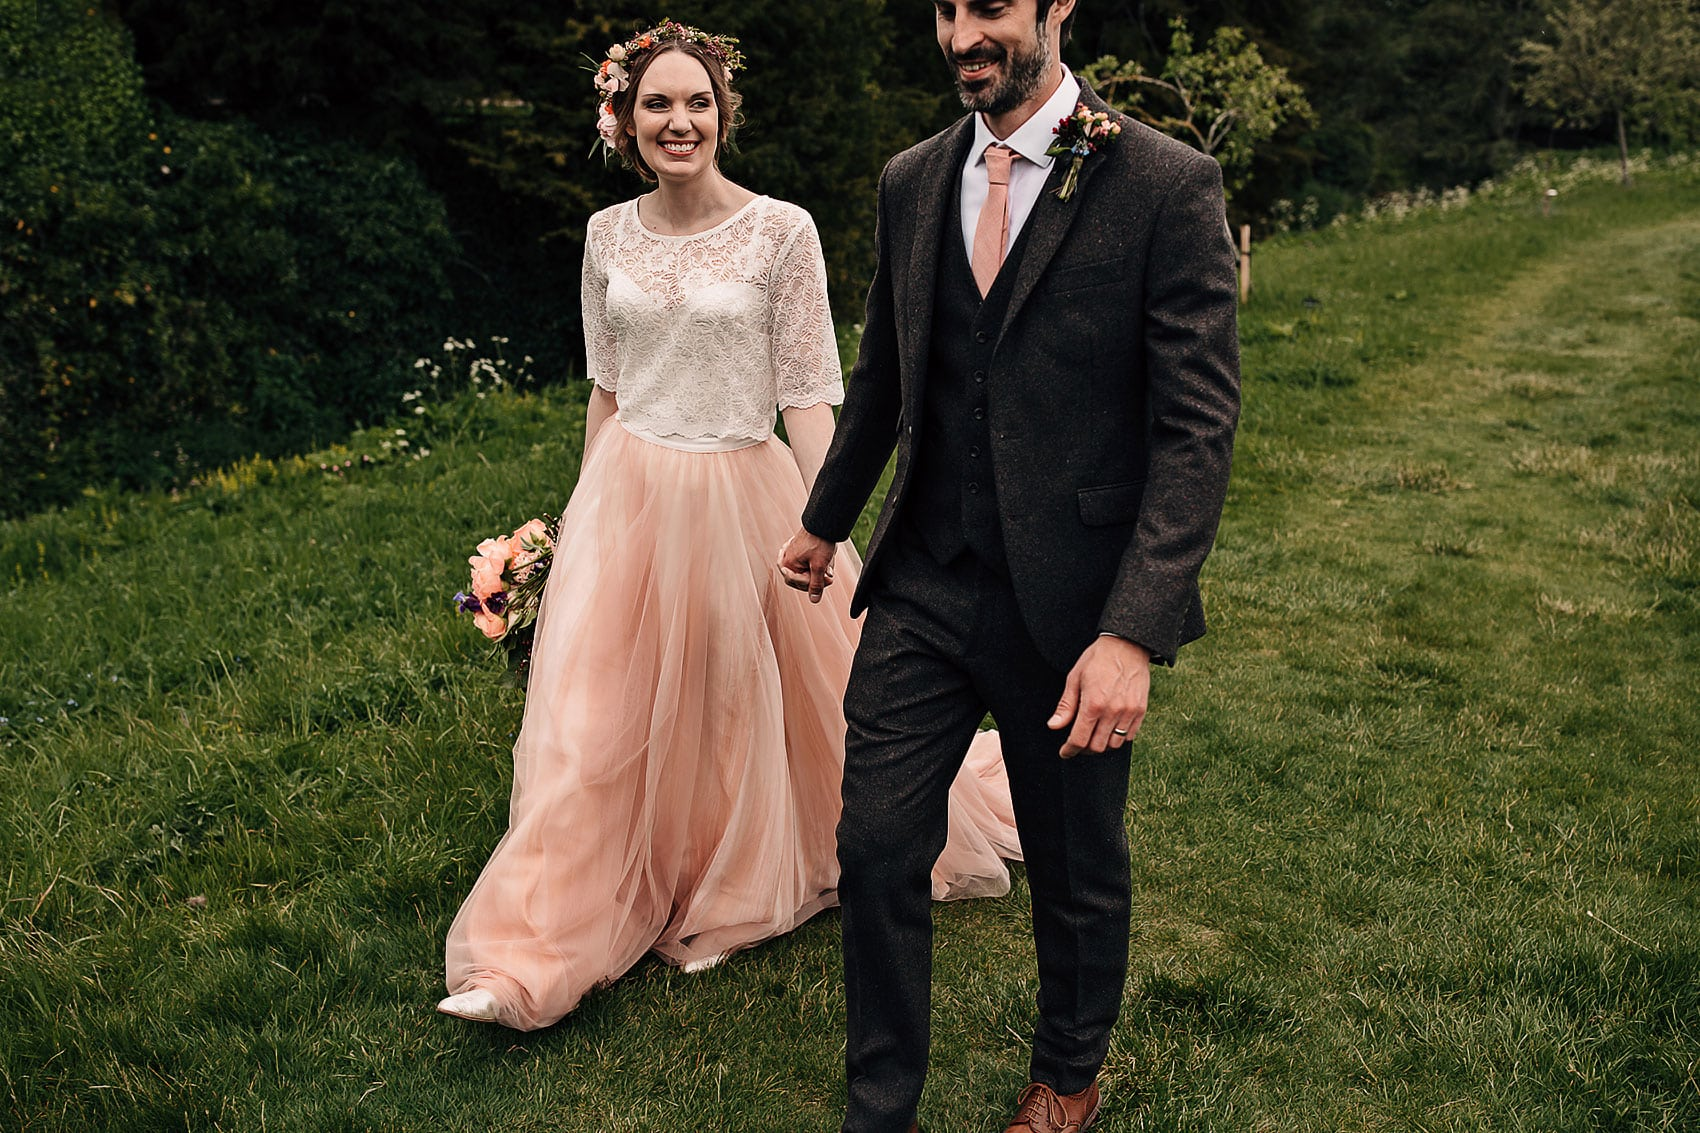 Yorkshire photography outdoor wedding